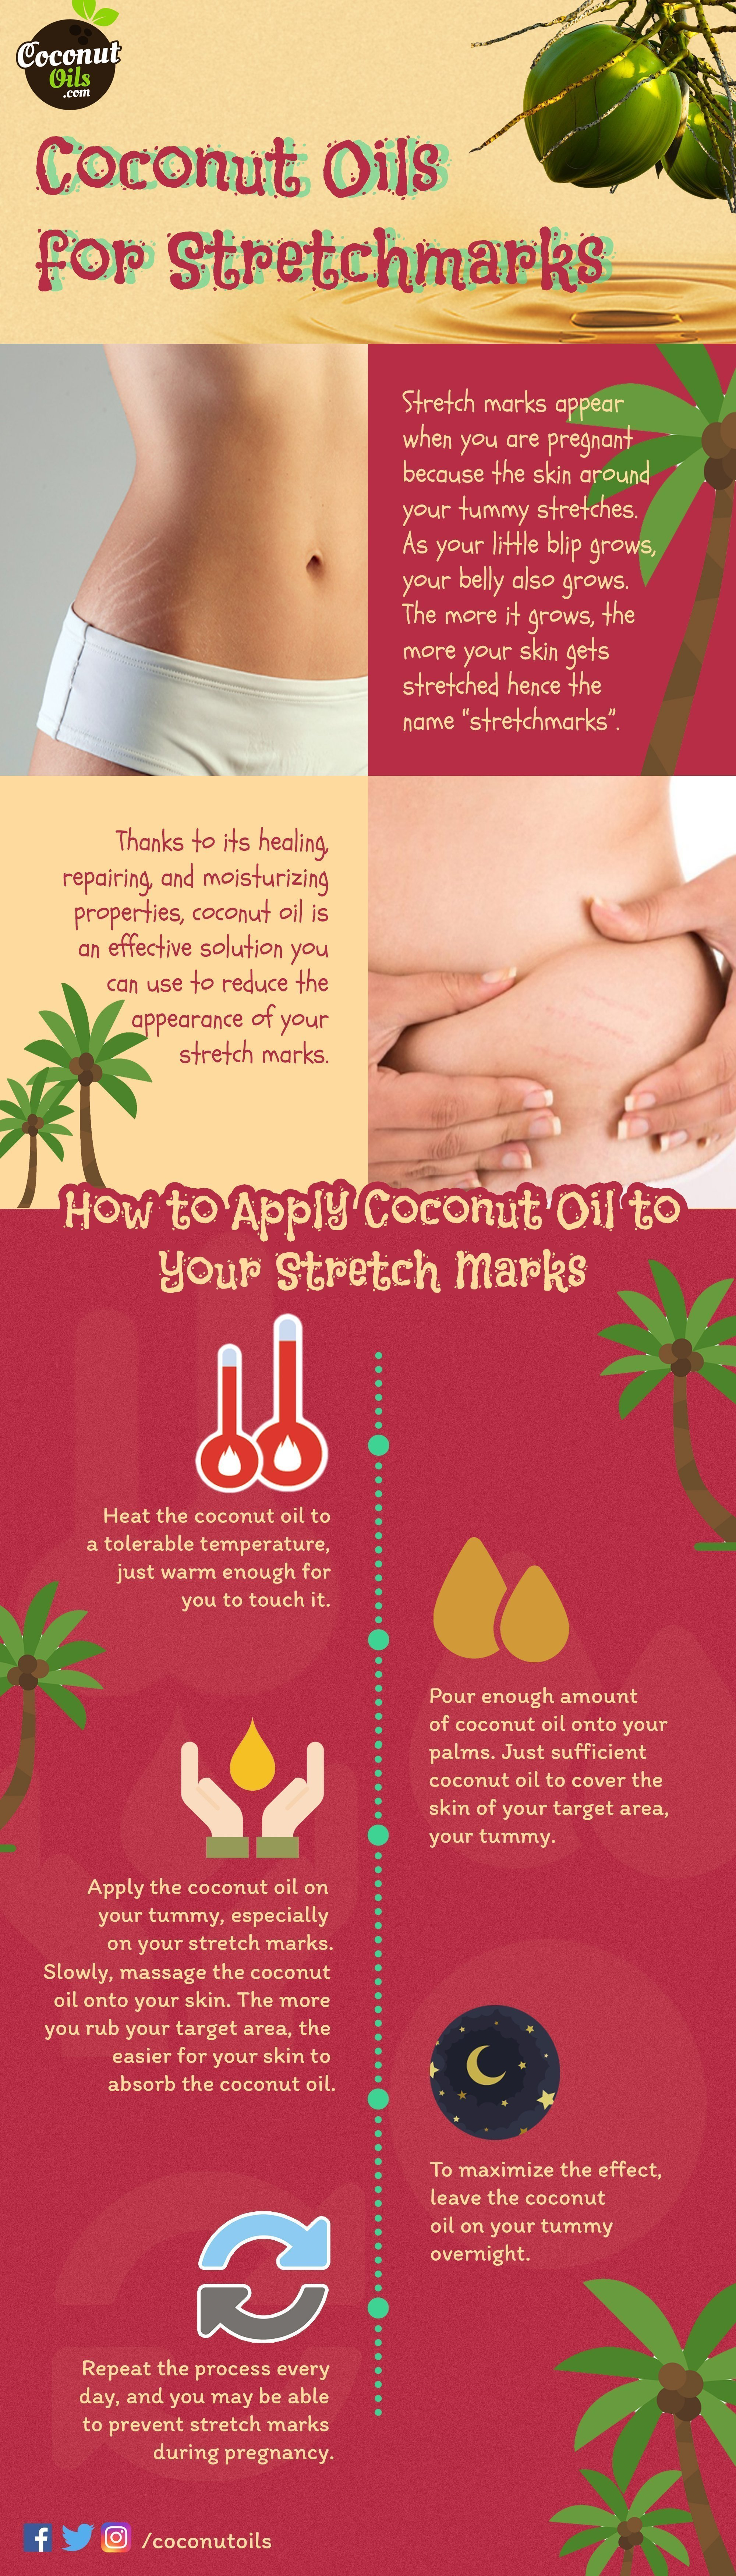 Coconut Oil for Stretchmarks